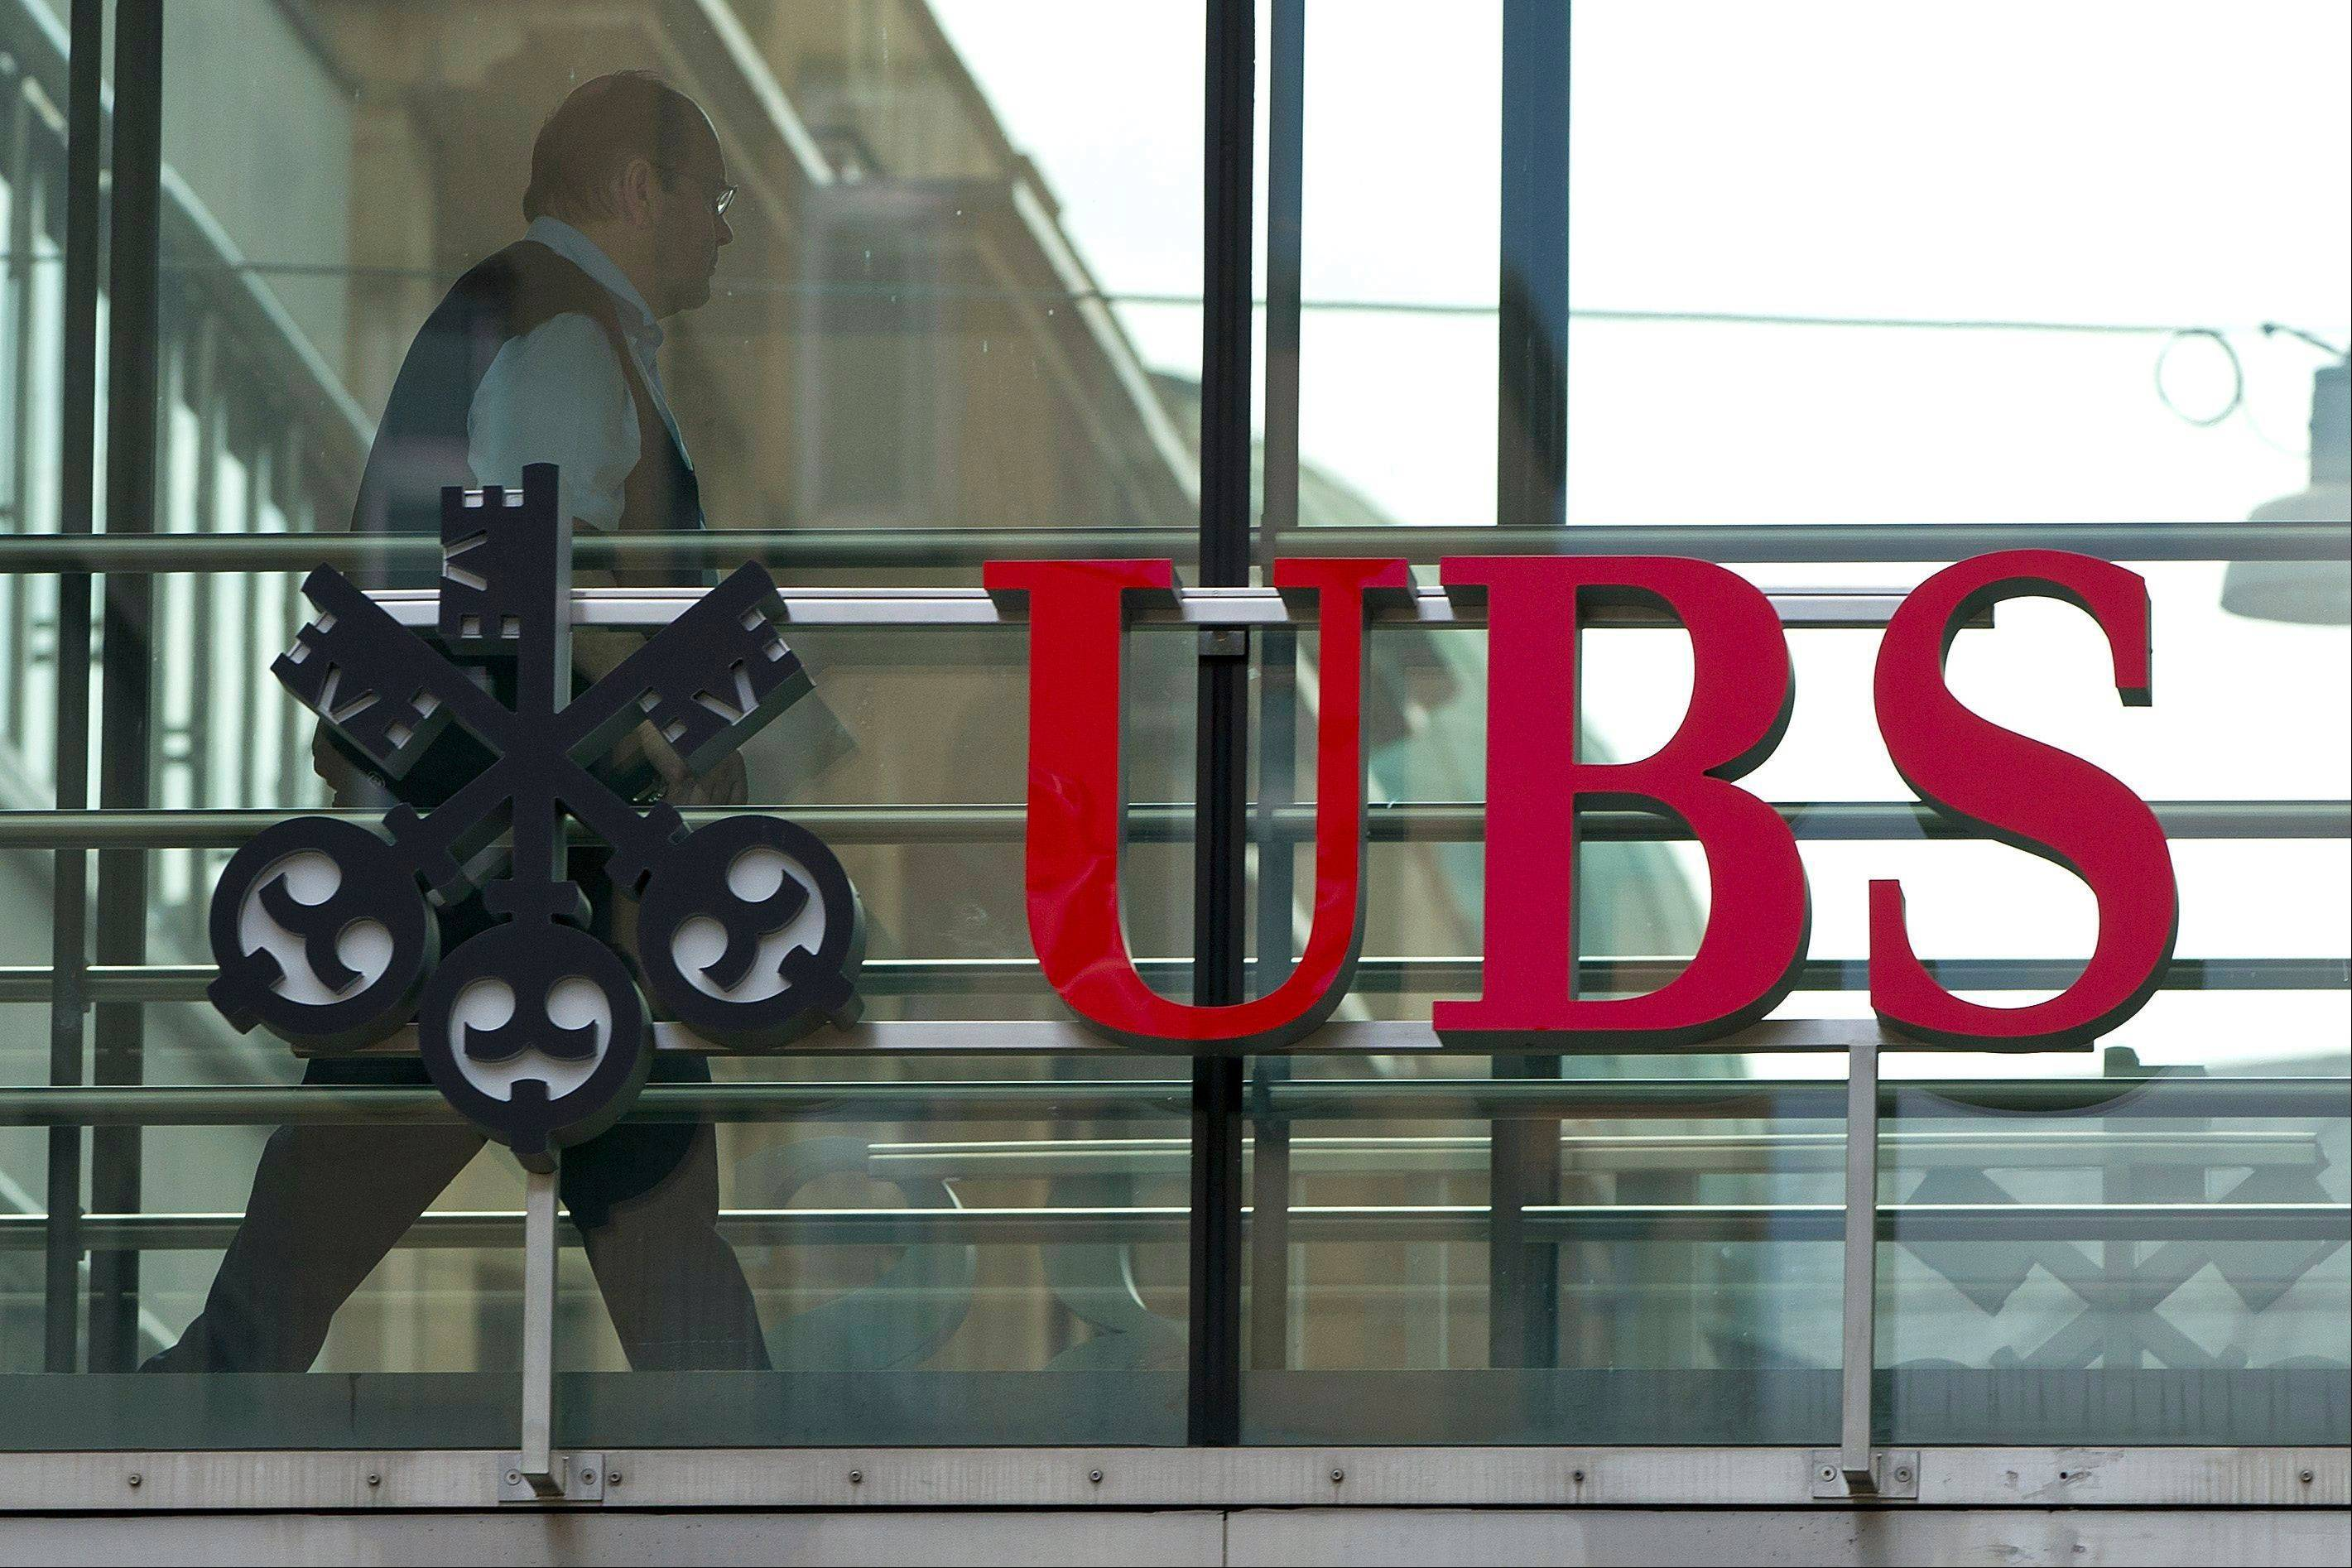 UBS AG posted second-quarter net profits of 425 million Swiss francs (US$434.16 million) Tuesday, July 31, 2012, a sharp plunge from the 1.02 billion Swiss francs (US$1.2 billion) it posted in the comparable period a year ago. Hit by lower trading revenue and fewer commissions and client fees, Switzerland�s largest bank said the 58 percent net profit drop reflects �challenging conditions marked by increased volatility and greater client caution.�